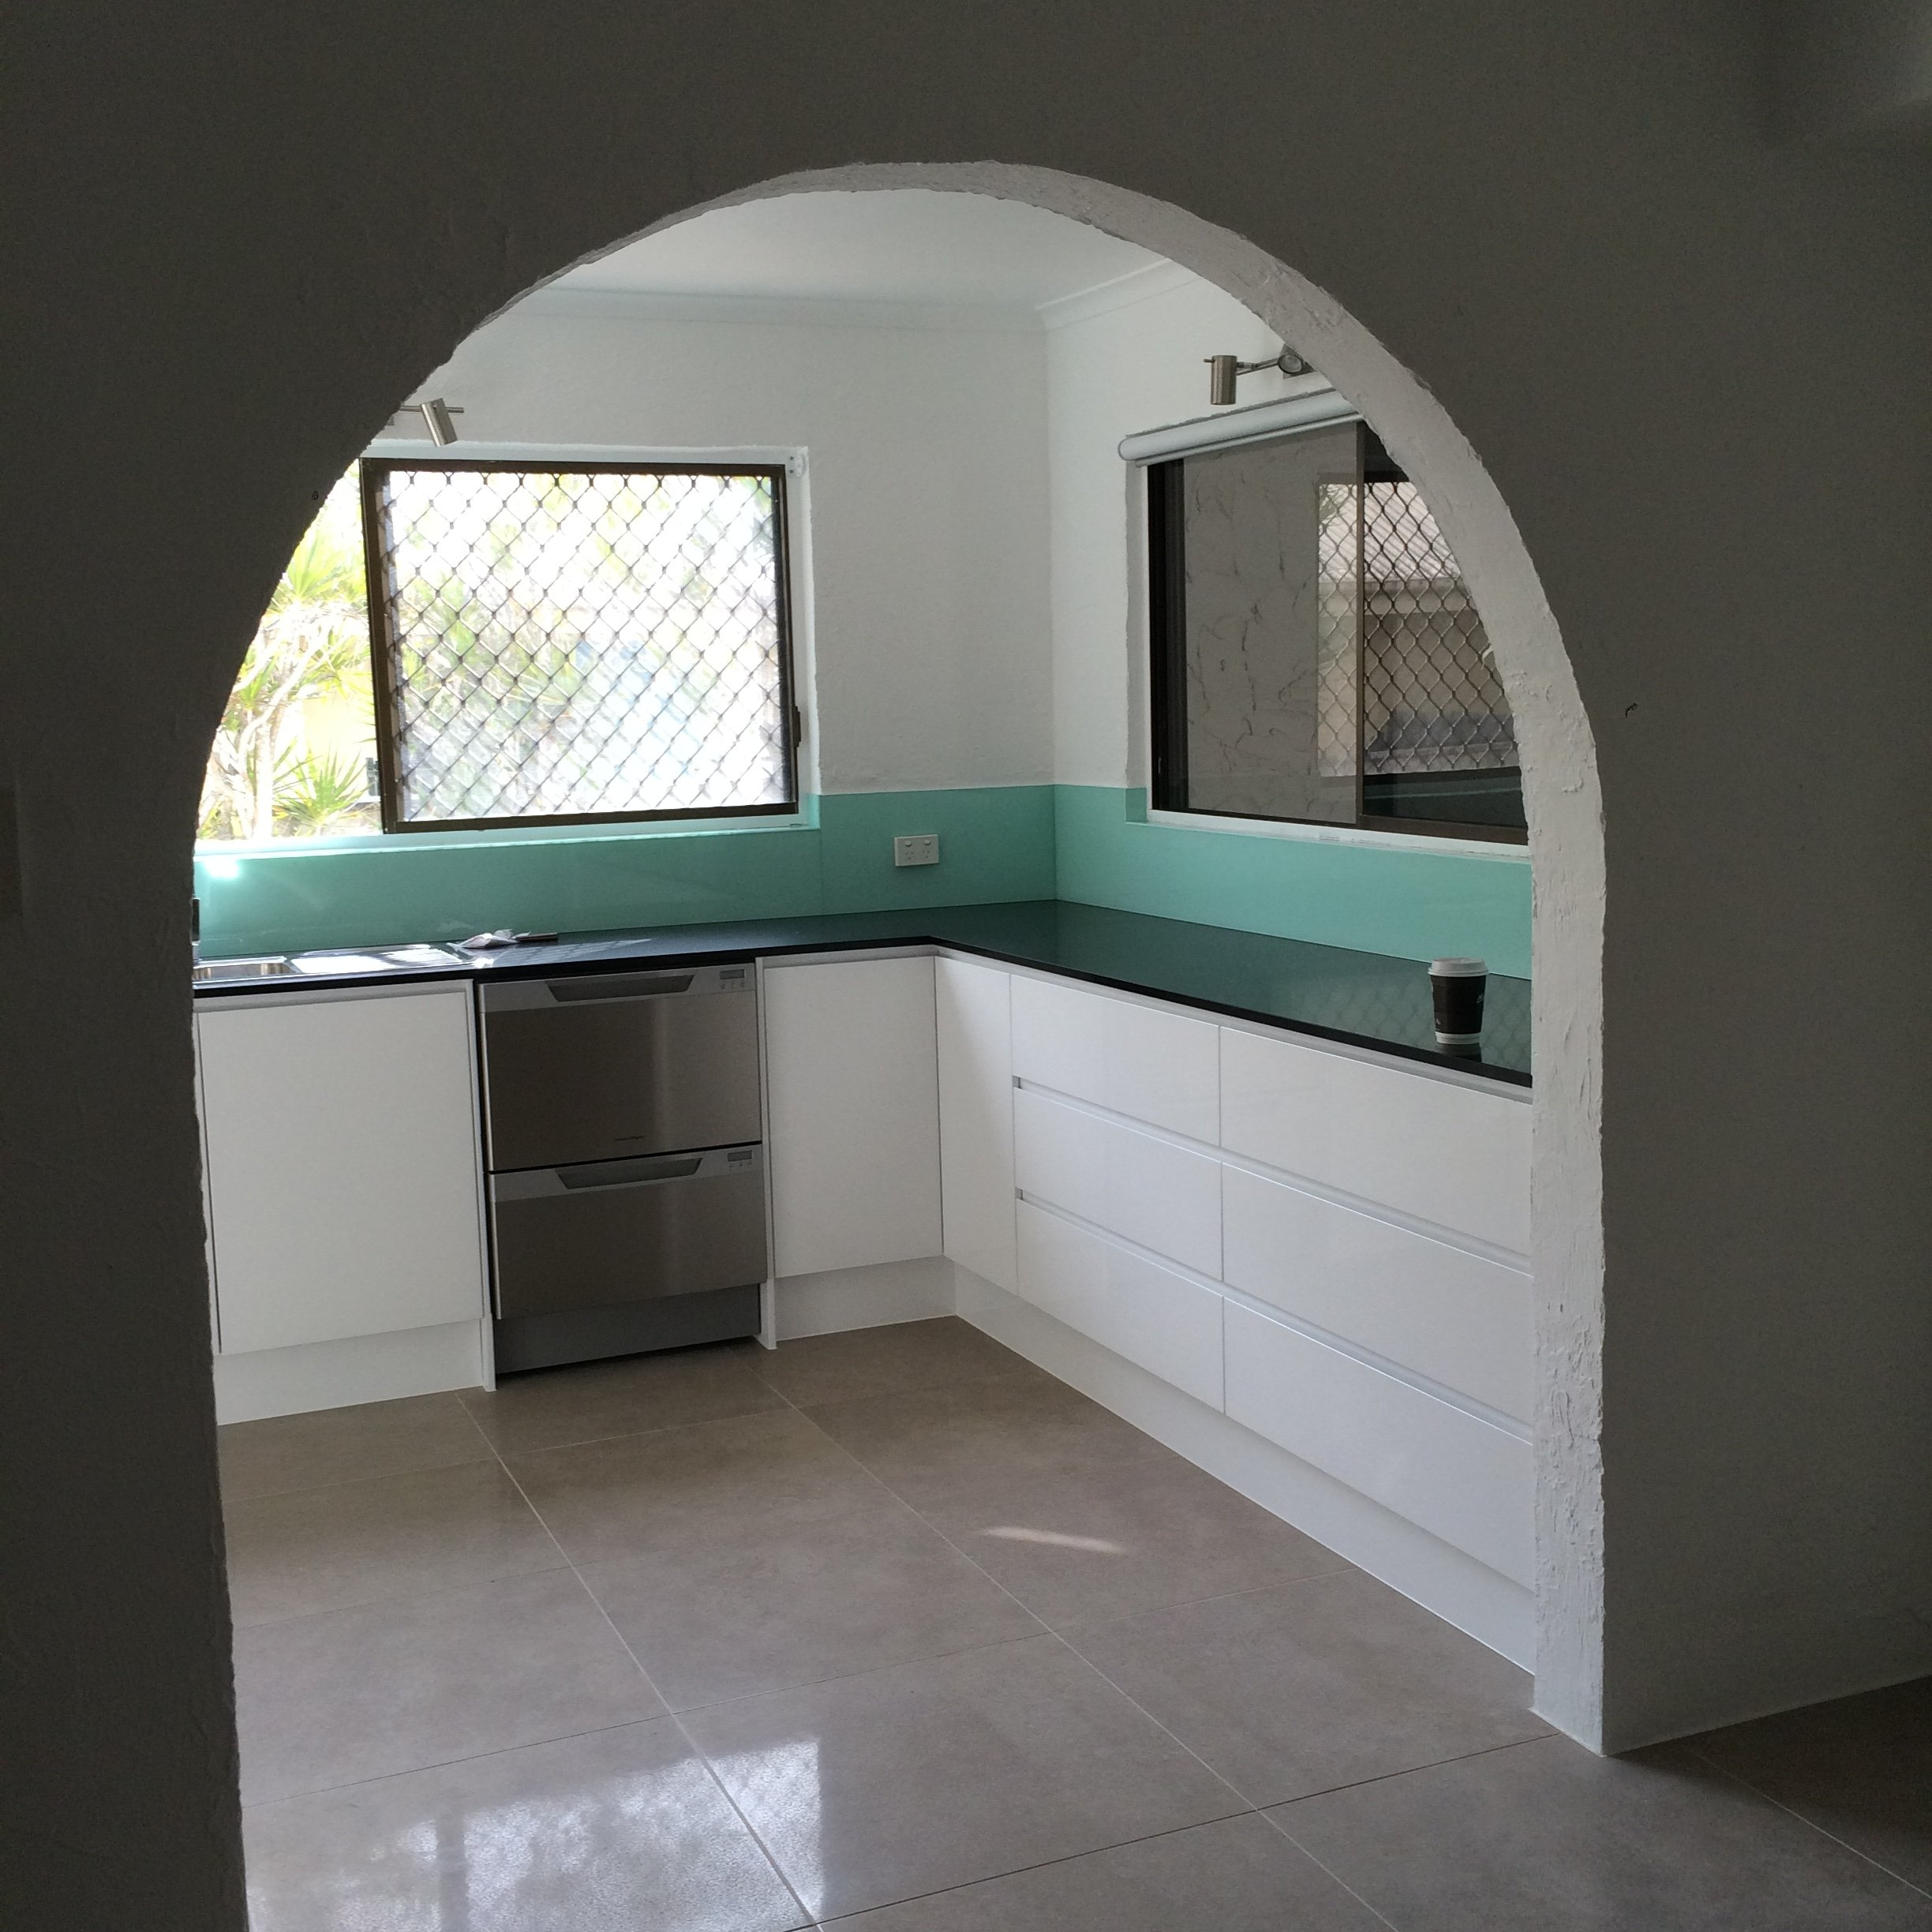 Interior view of the kitchen after renovation